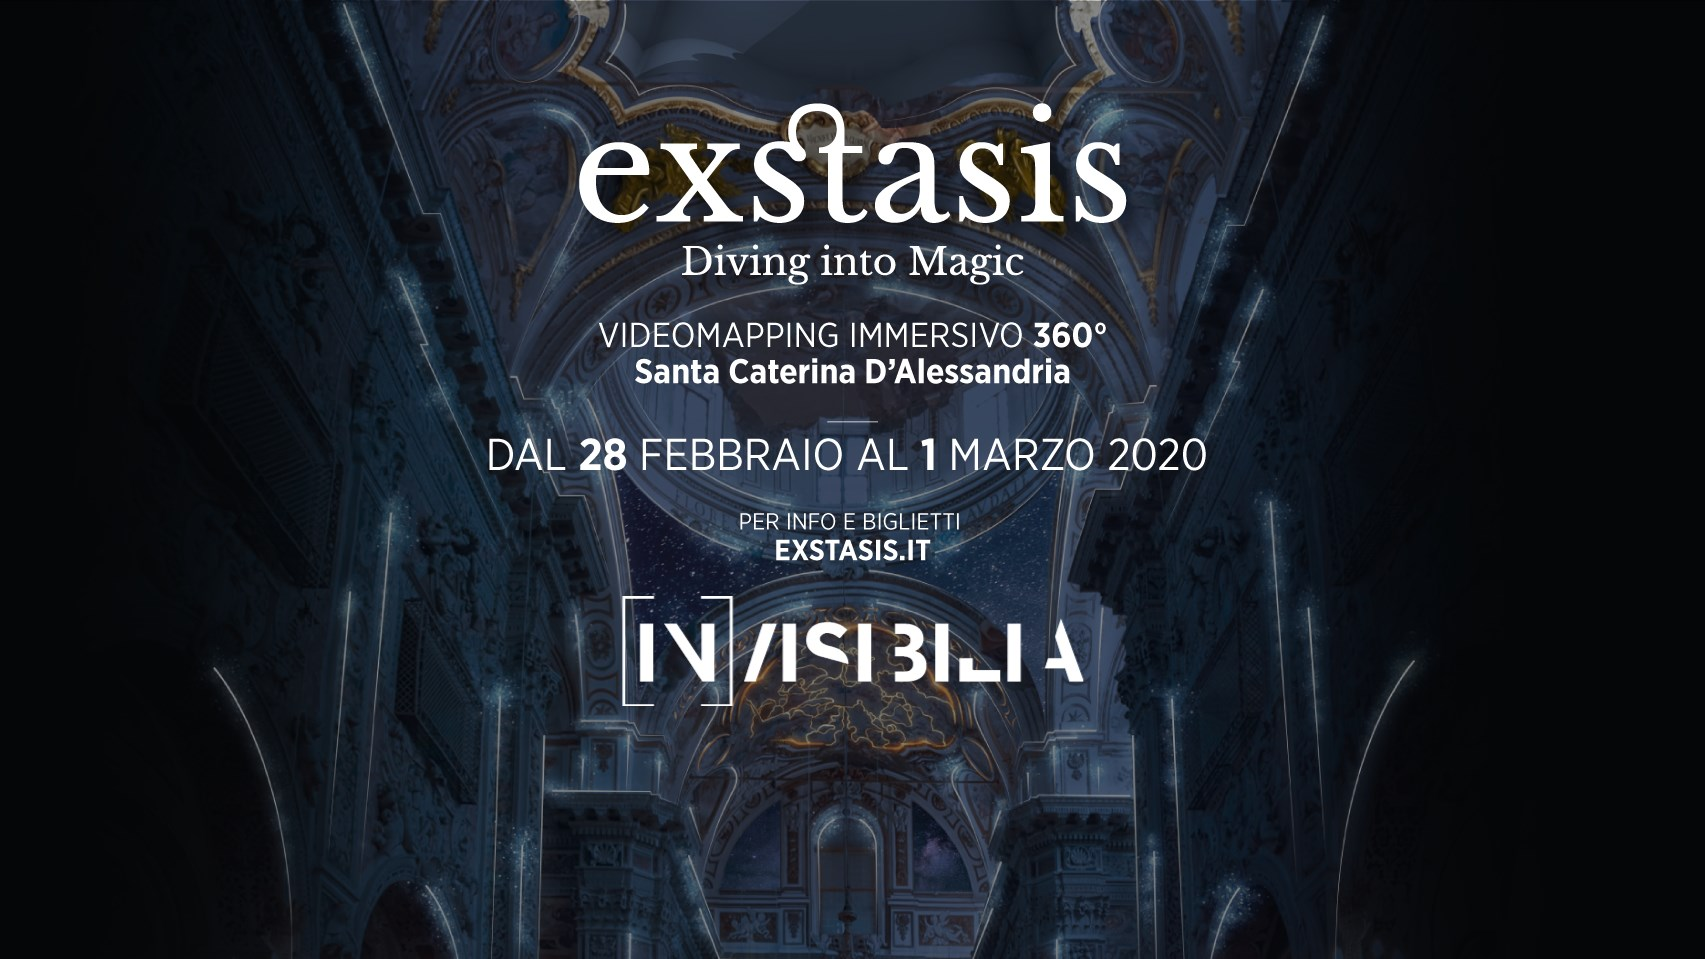 Exstasis -  Video Mapping